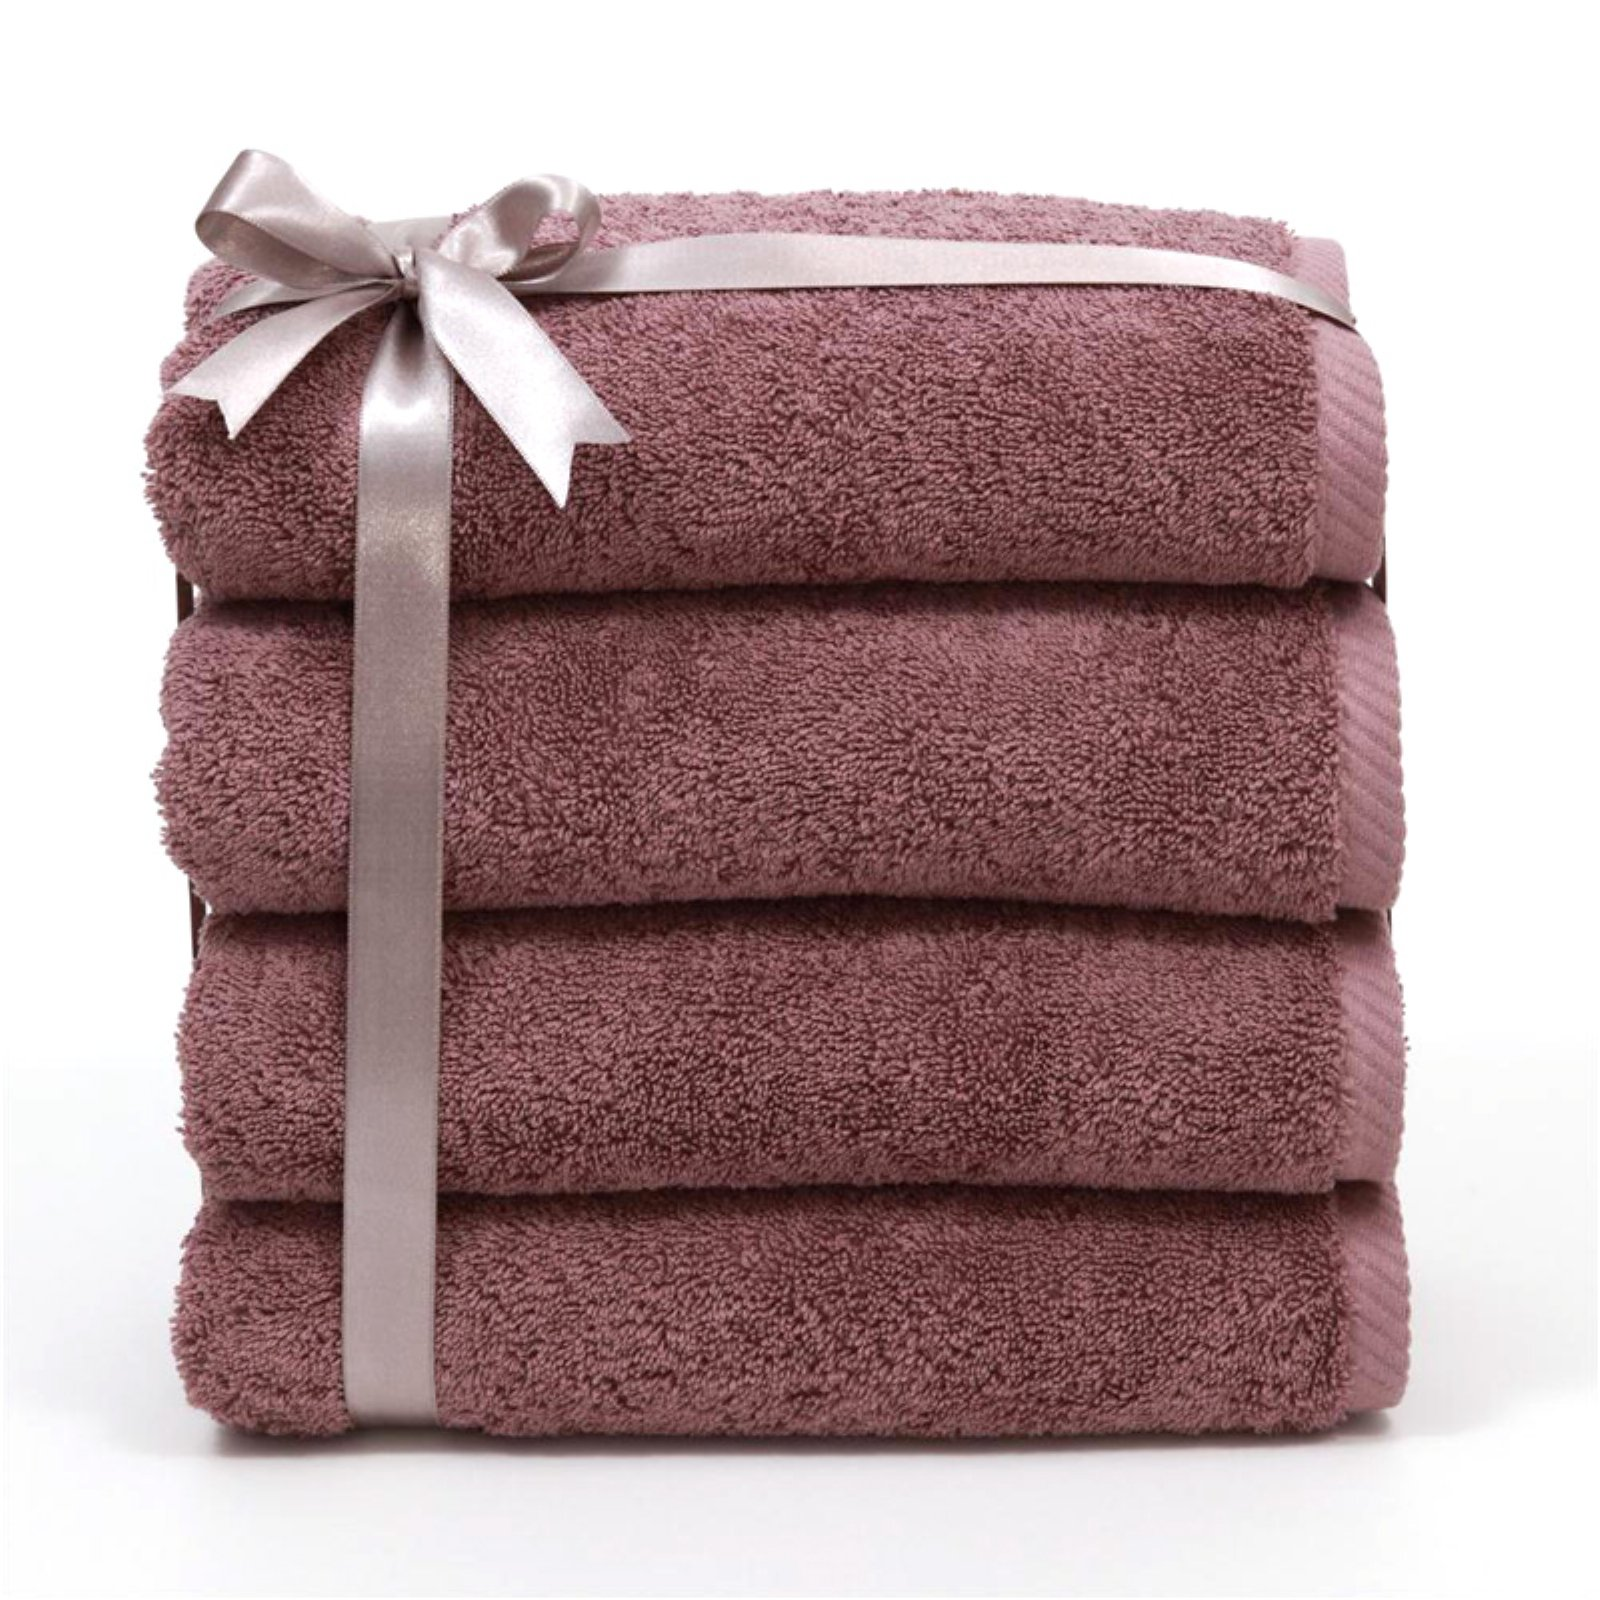 Luxury Hotel & Spa 100% Turkish Cotton Soft Twist Hand Towels - Set of 4